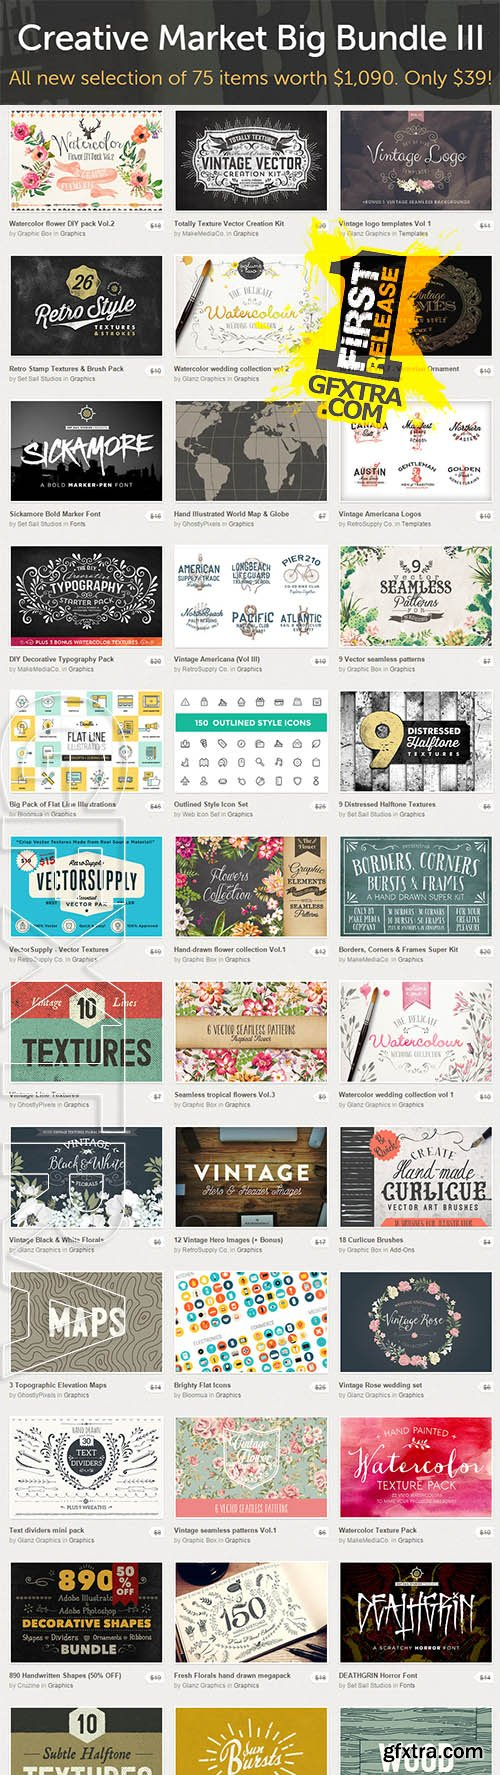 CreativeMarket - Big Bundle III